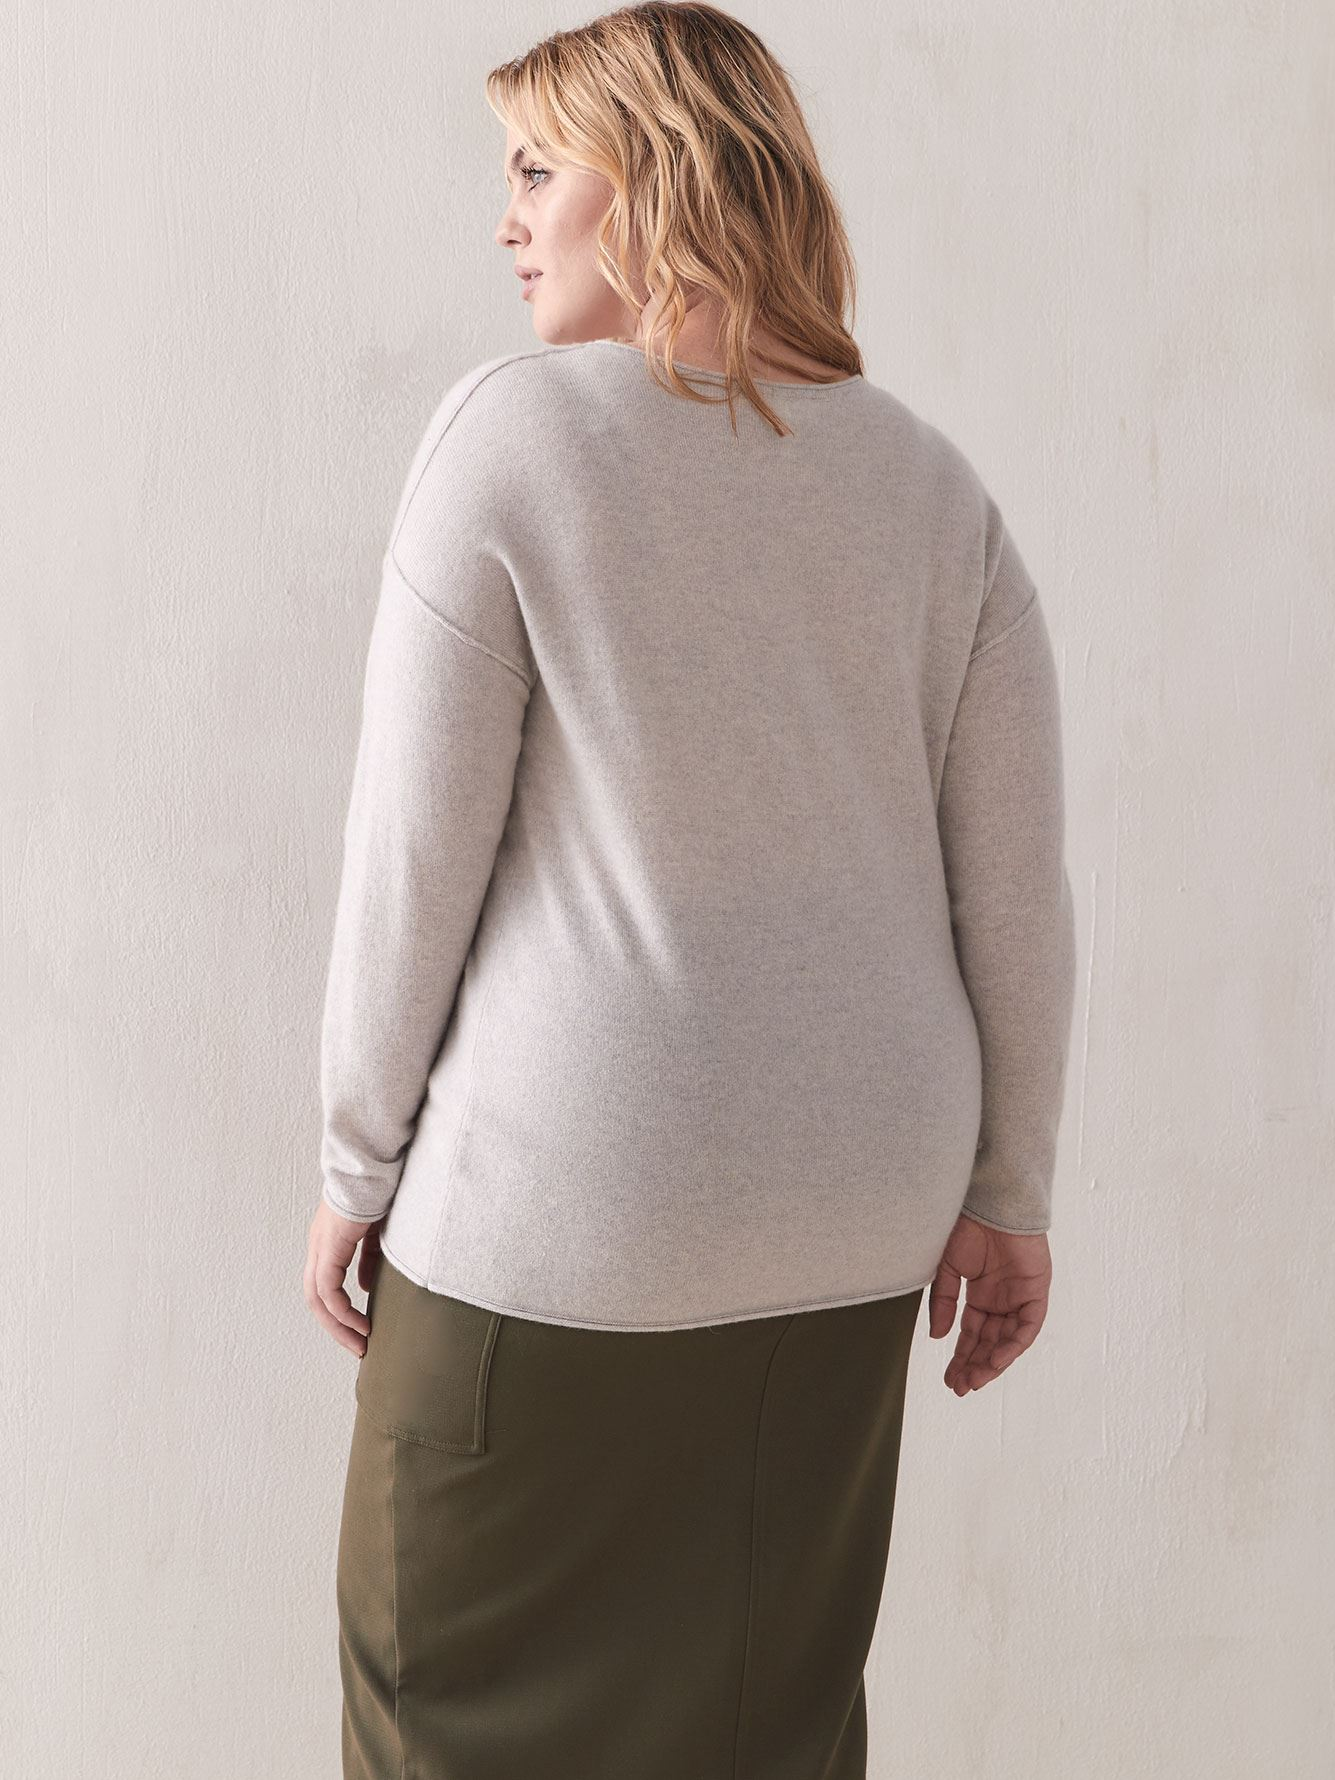 Cashmere V-Neck Sweater - Addition Elle